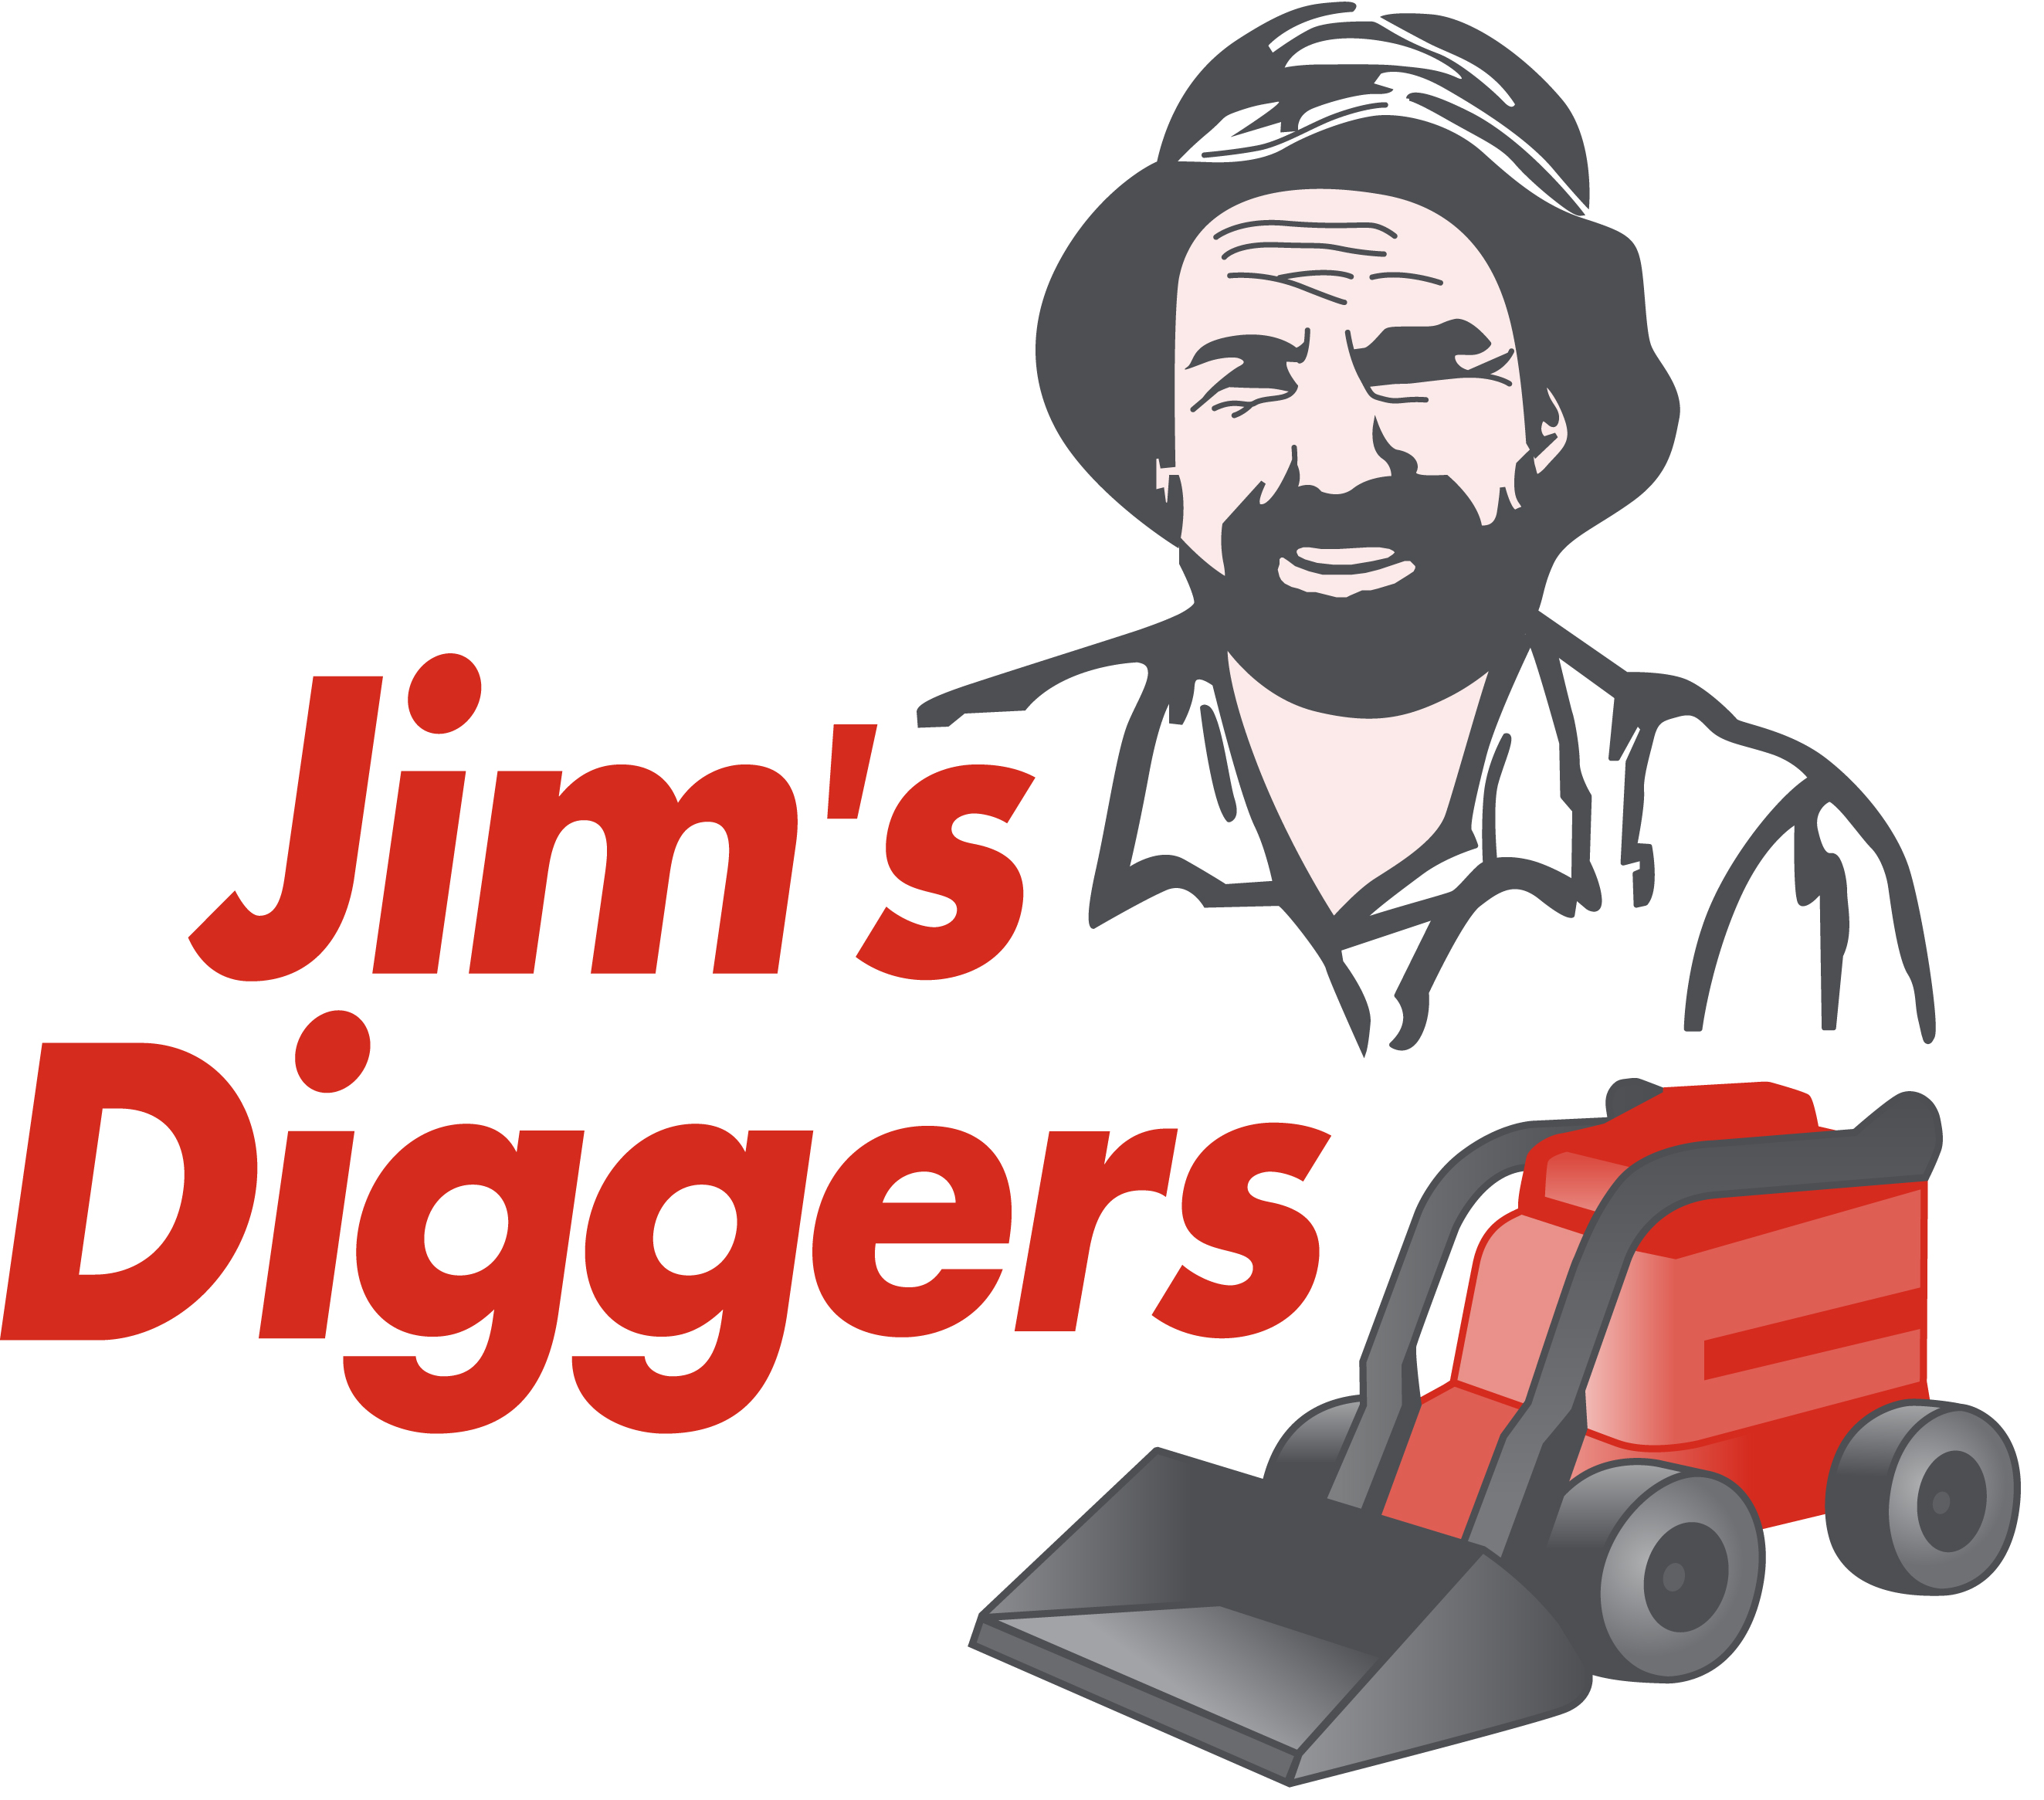 Existing and Establised Jims Diggers Franchise For Sale - Geelong